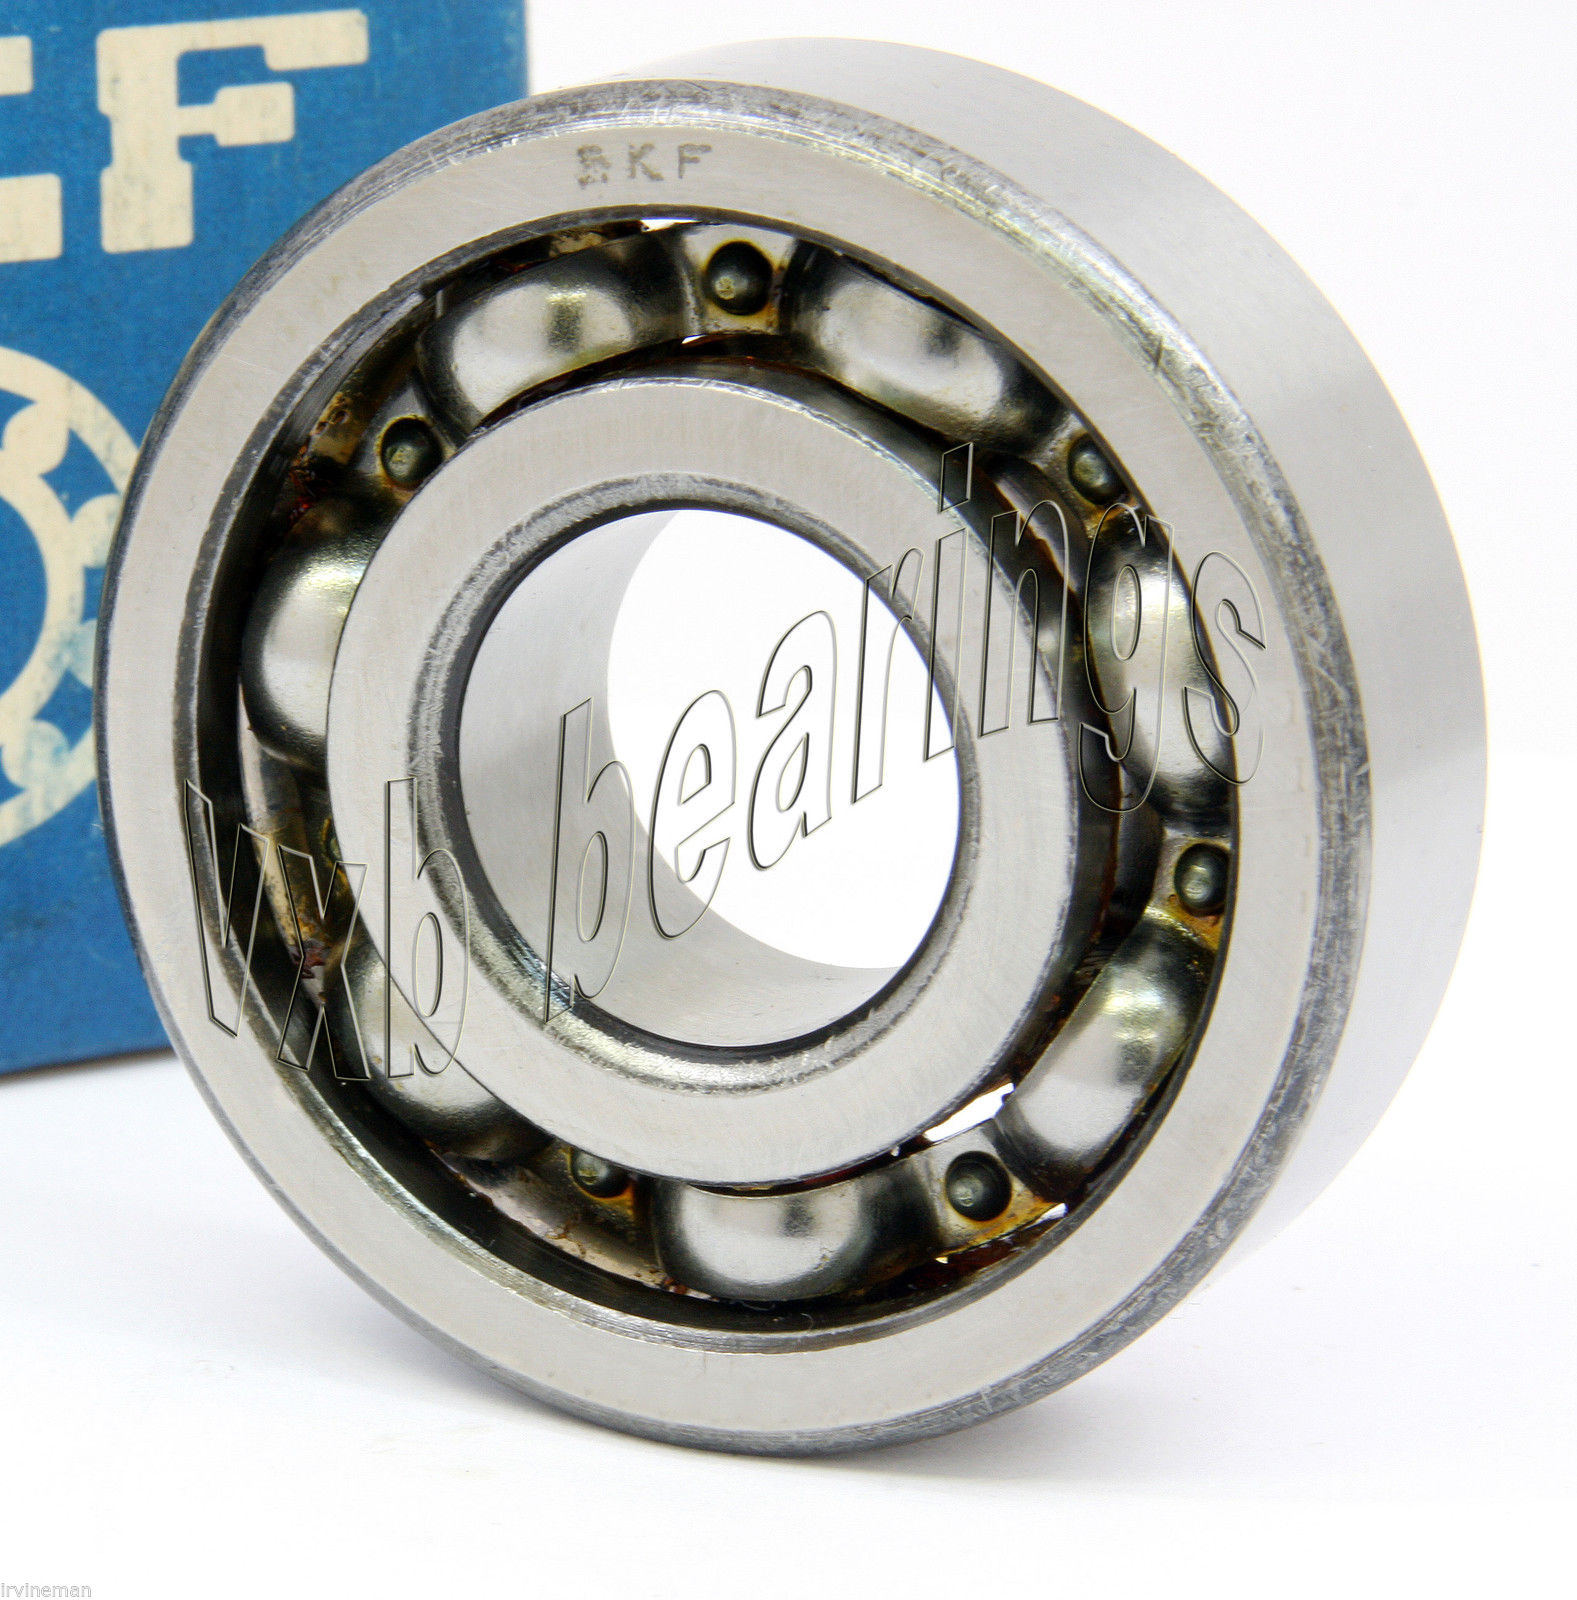 high temperature 6221 SKF Bearing 105x190x36 Open Large Ball Bearings Rolling